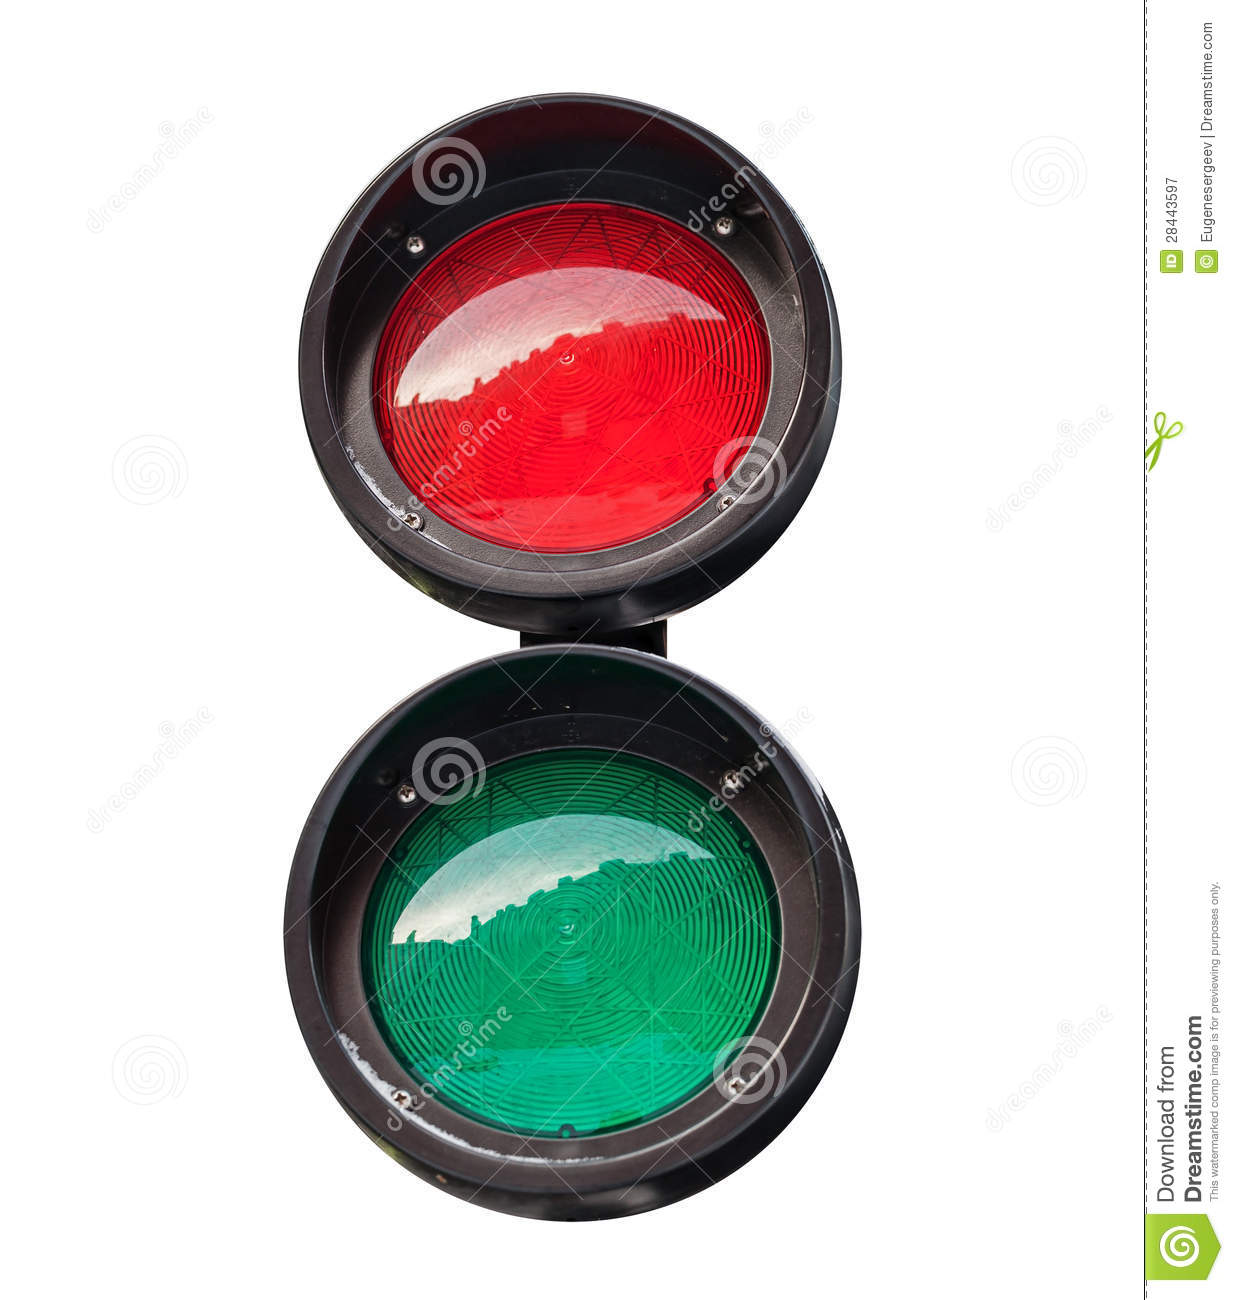 Red And Green Small Round Traffic Light Stock Image